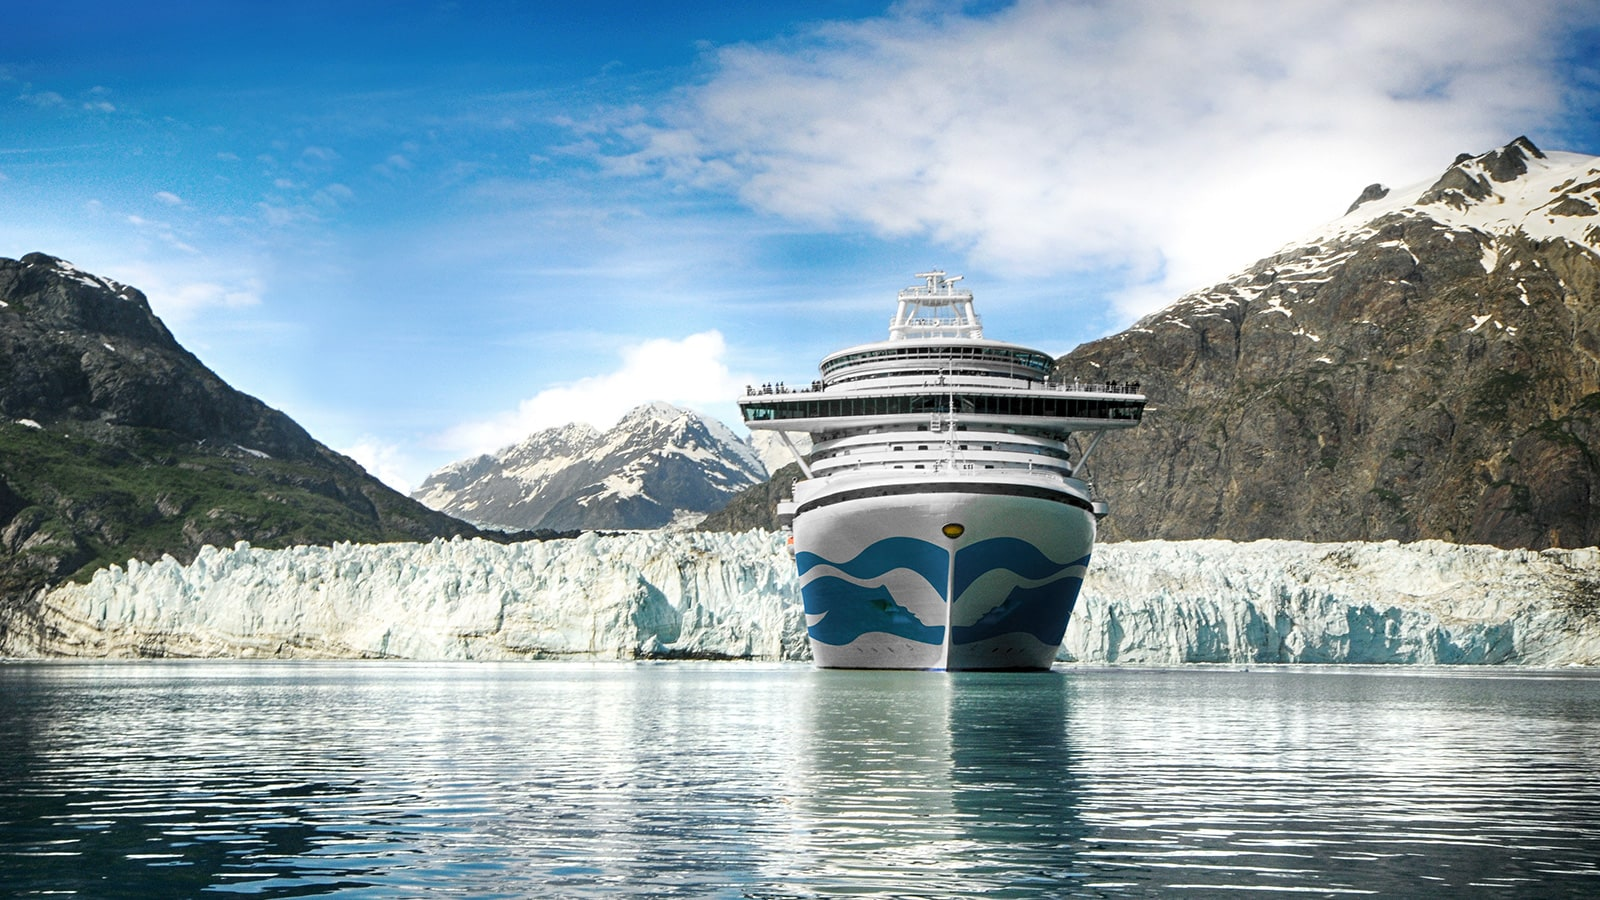 Best Cruise Lines 2021 Alaska Cruises 2021   Cruise to Alaska   Princess Cruises